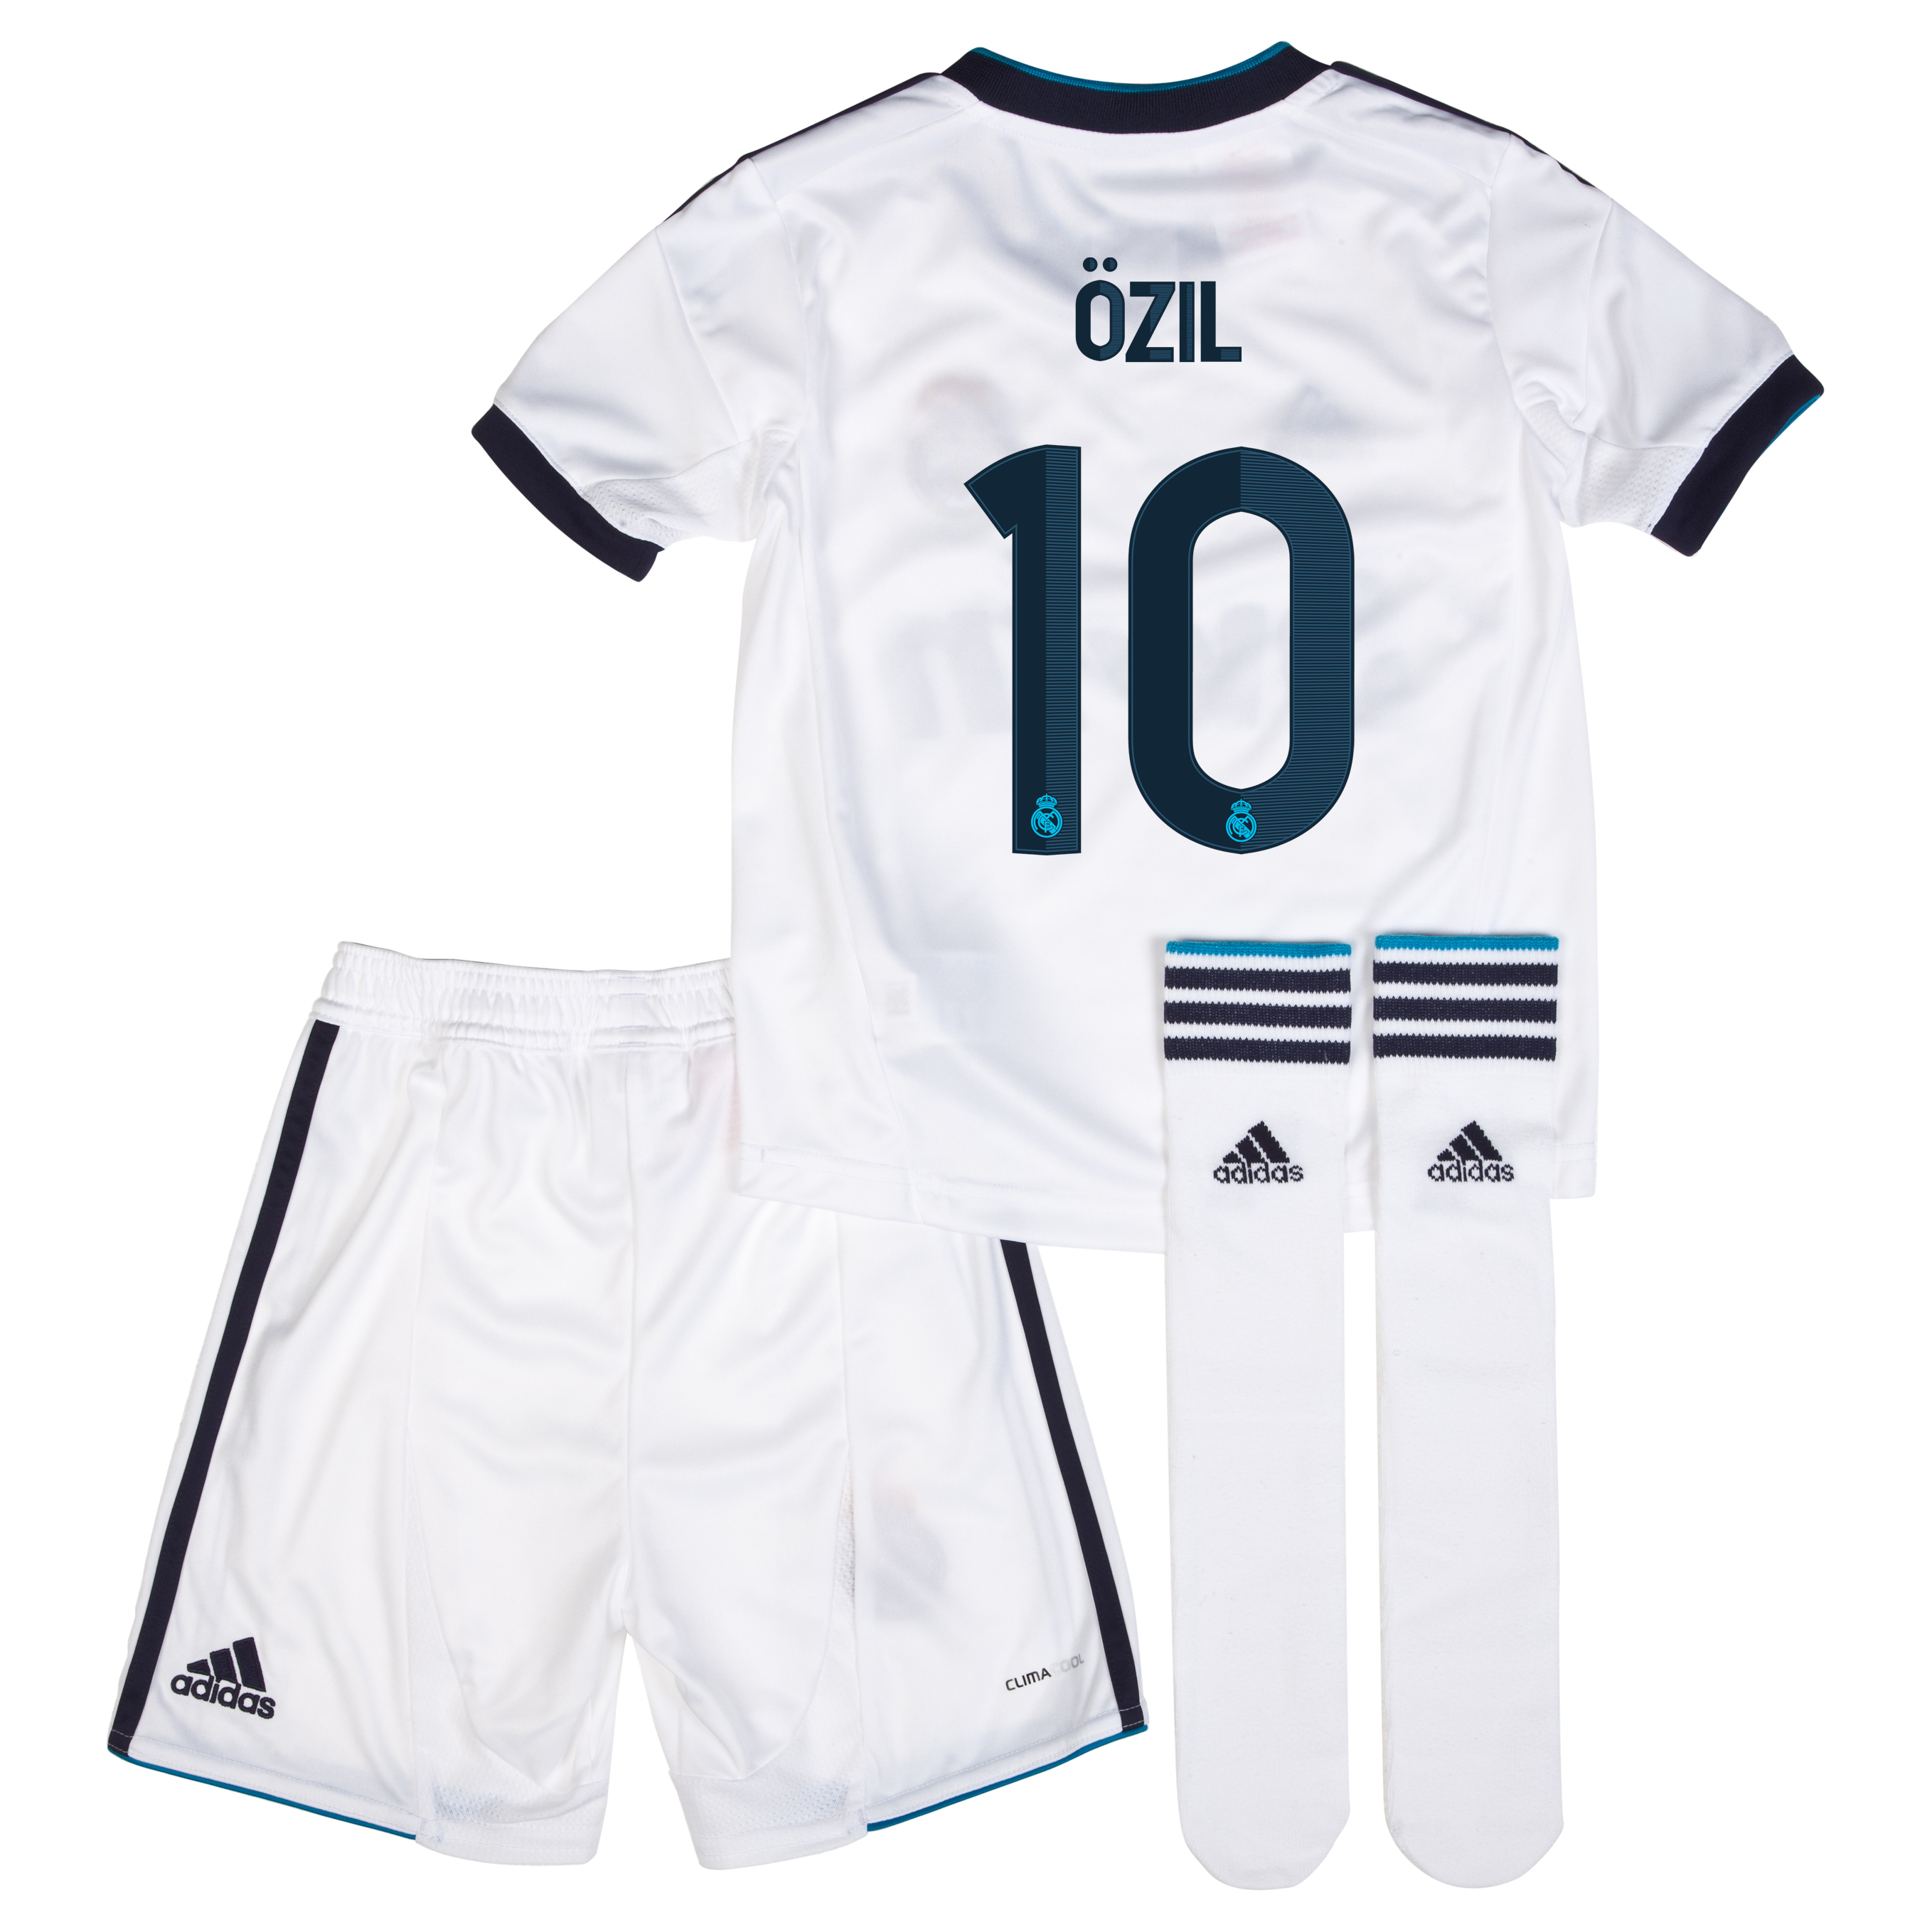 Real Madrid Home Mini Kit 2012/13 with &Ouml;zil 10 printing